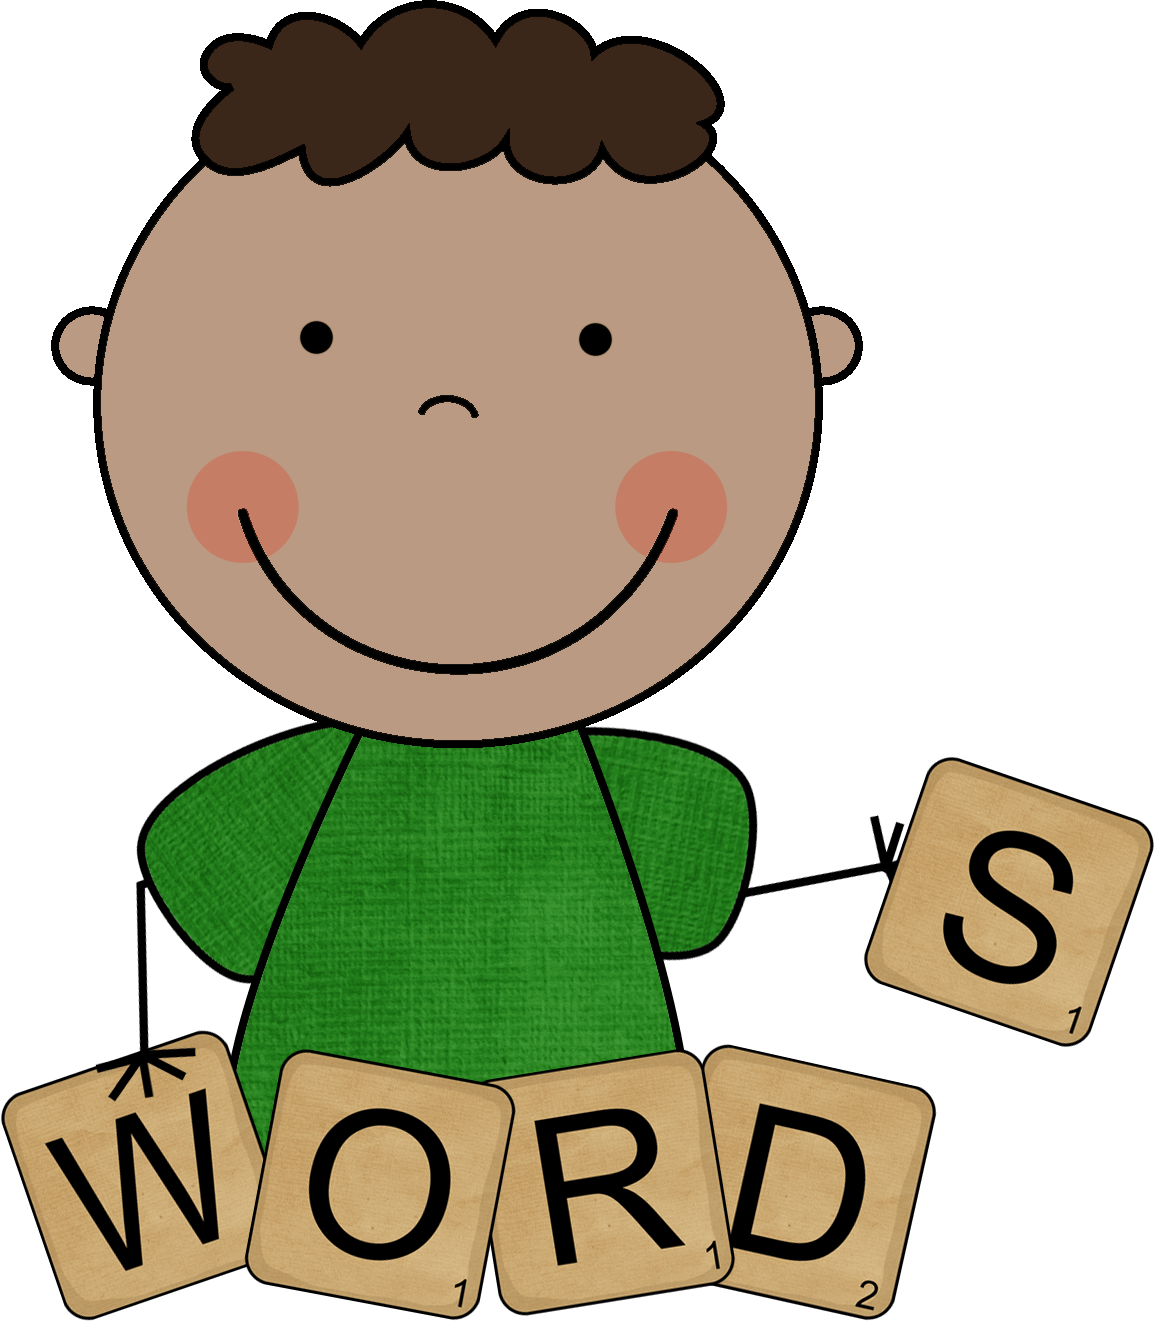 Knowledge clipart ability. Vocabulary word laughplayread wordfamilyclipart